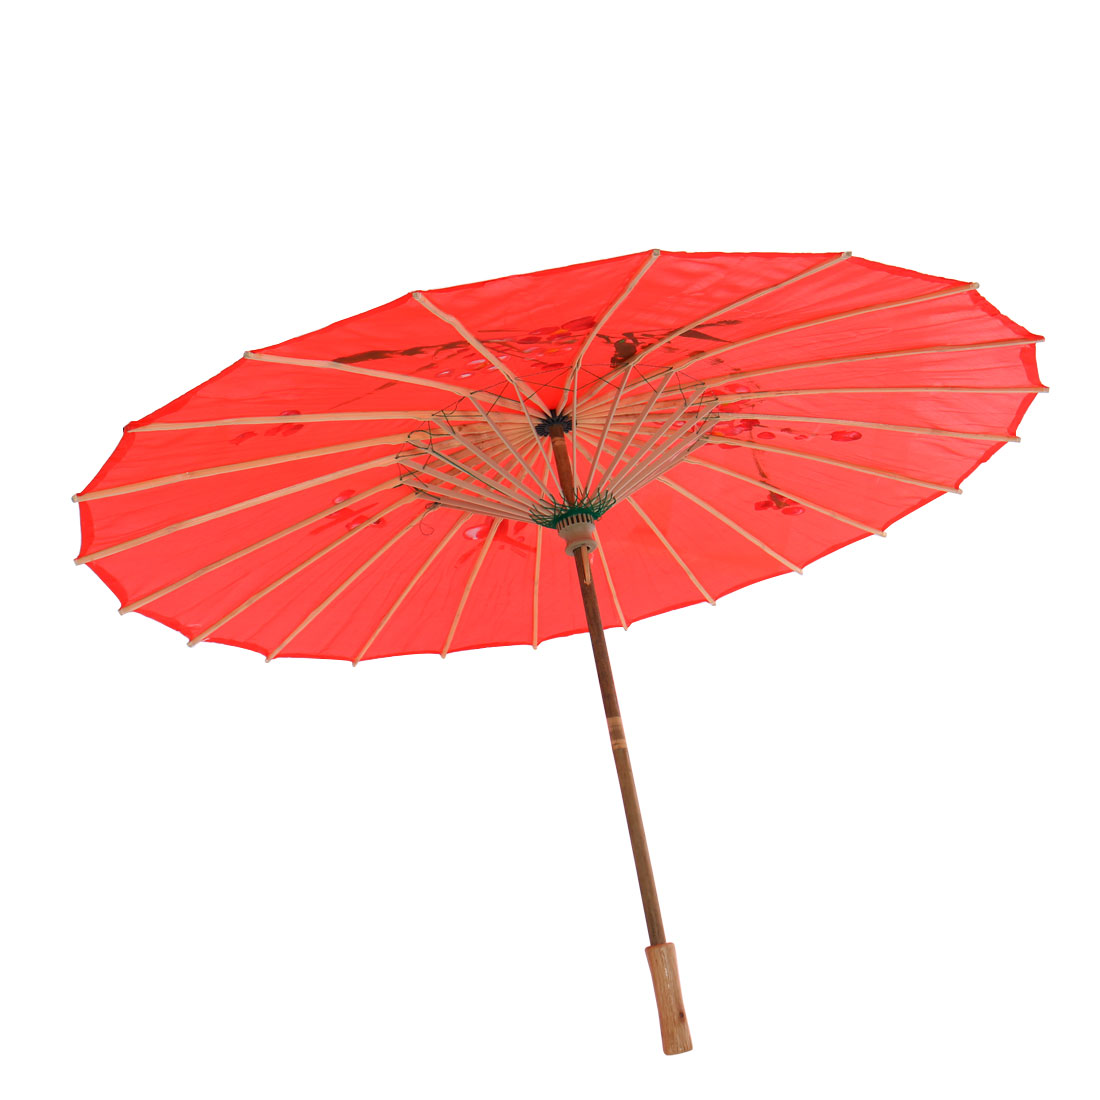 "Plum Blossom Pattern Red Bamboo 31.5"" Dia Chinese Oriental Umbrella Parasol"